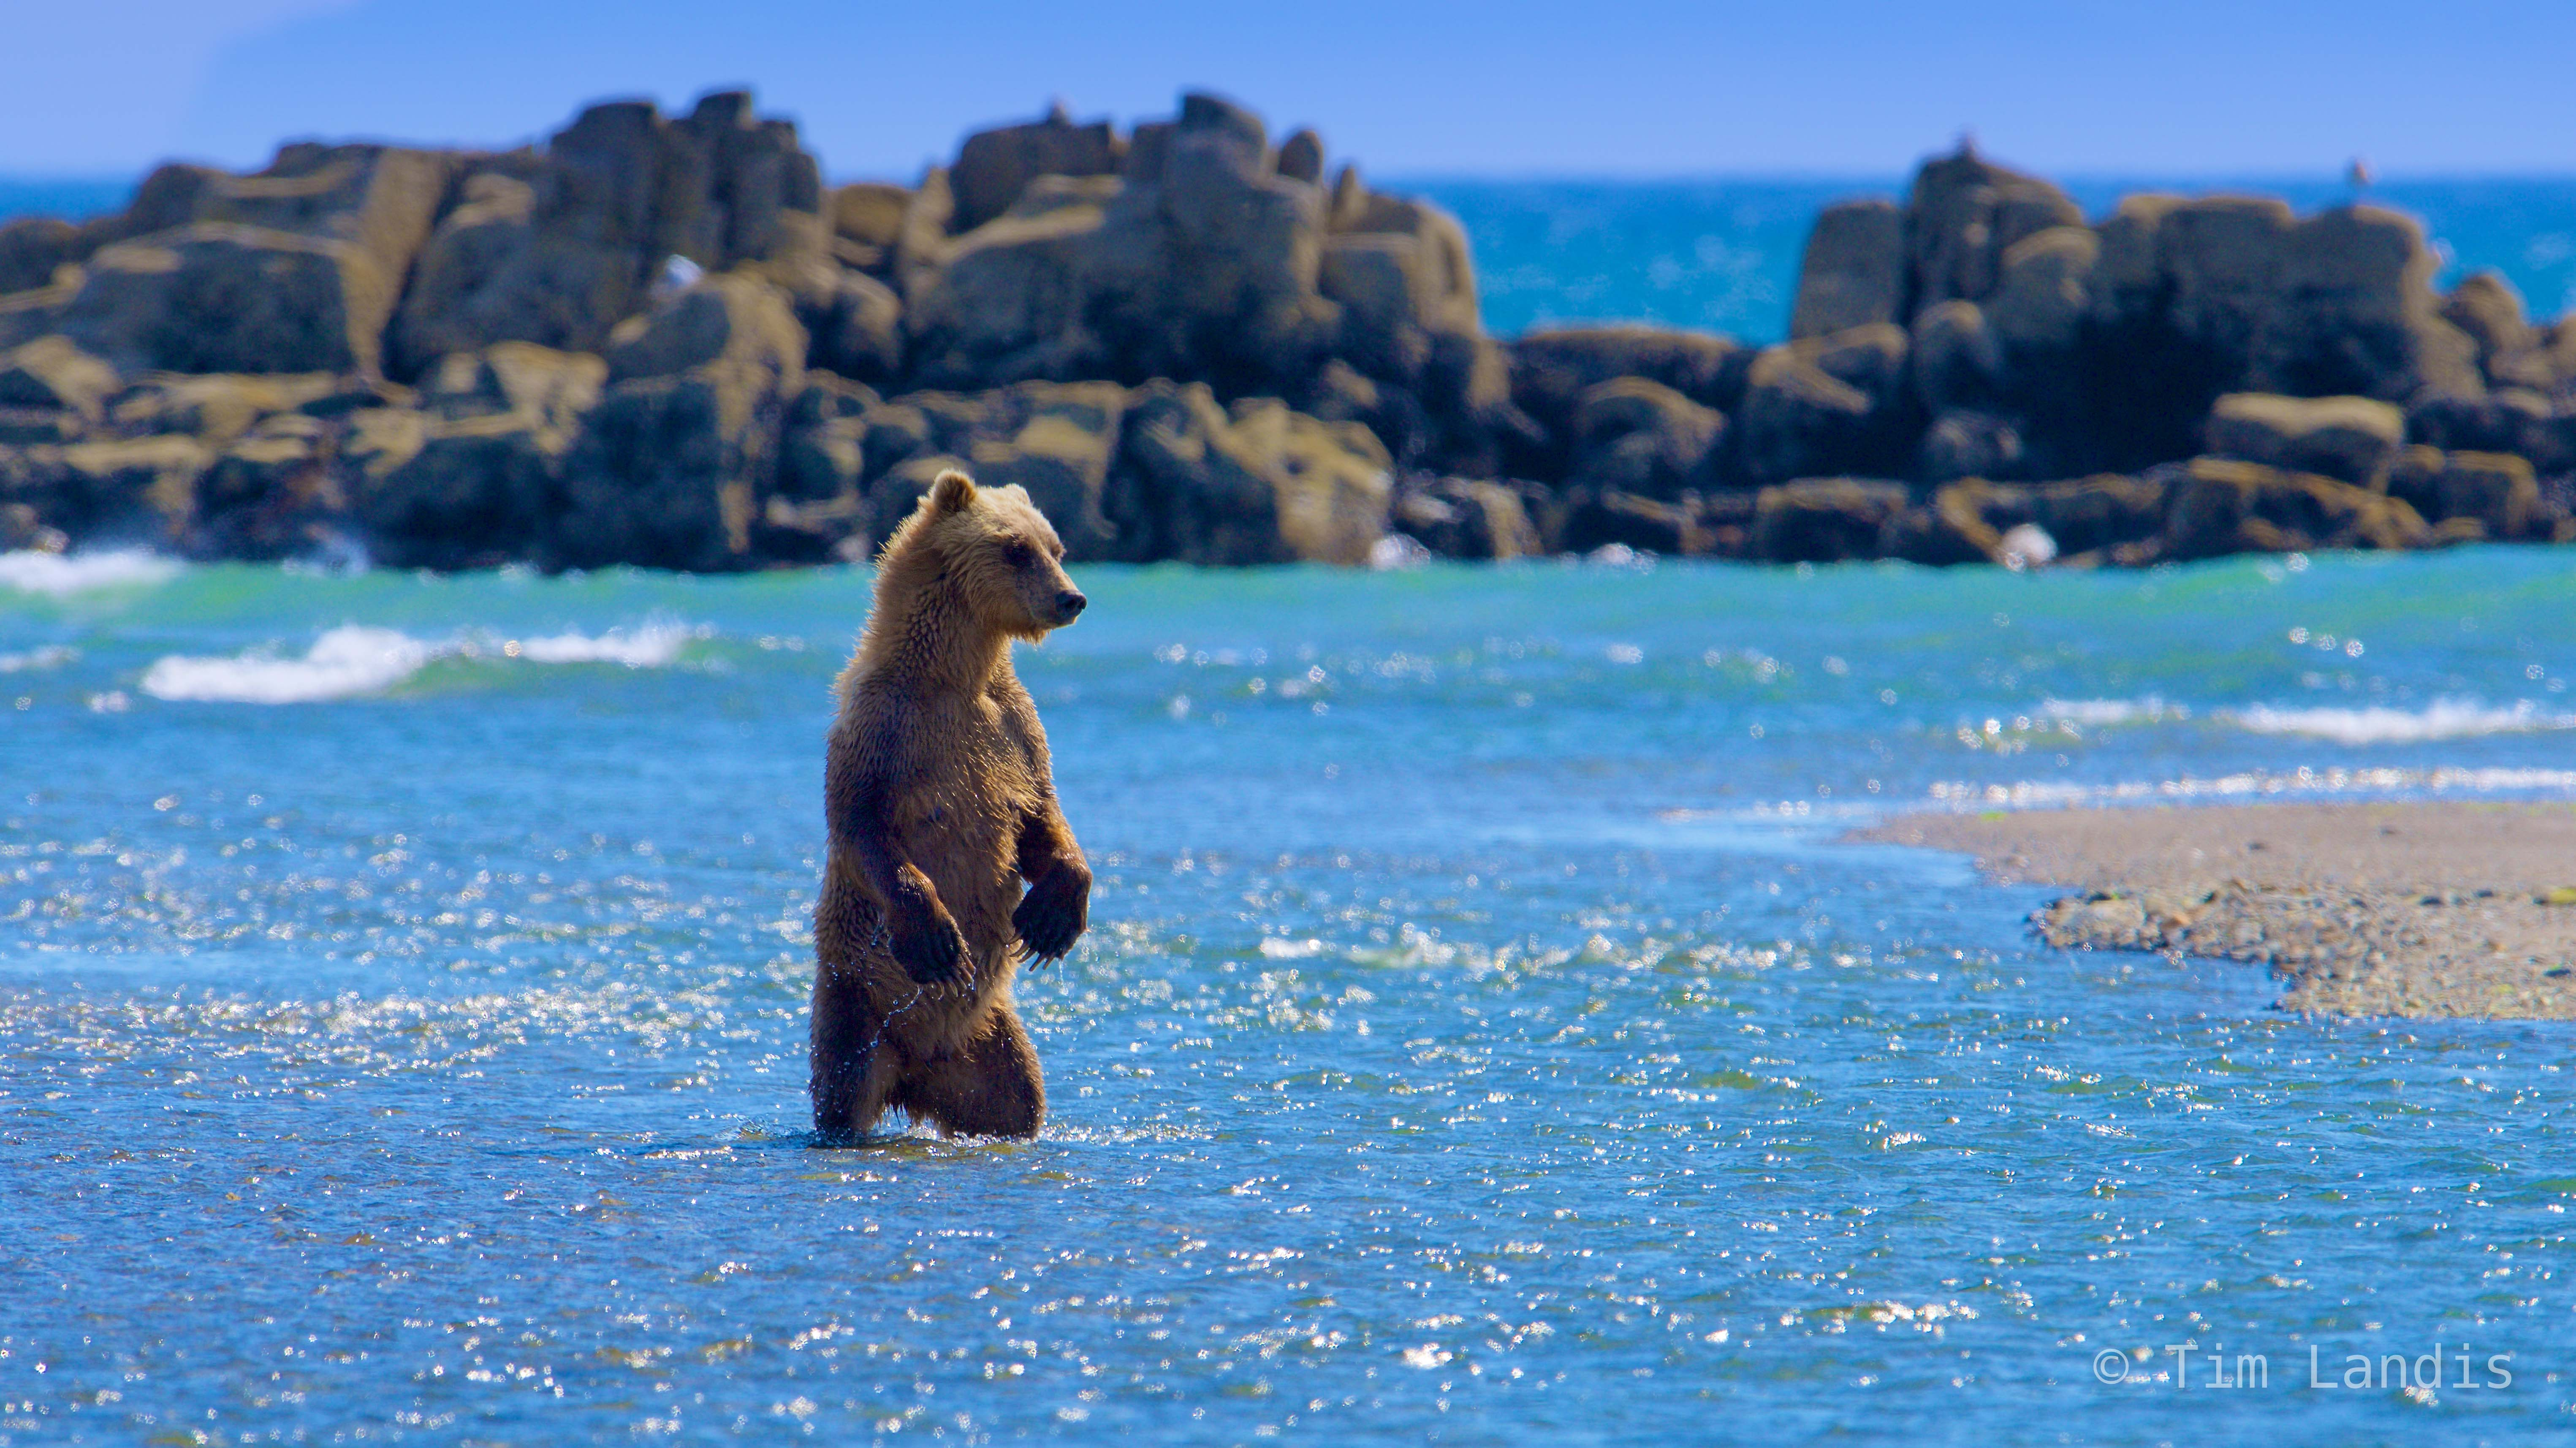 Alaska, grizzly bear fishing, grizzly bear standing in water, photo